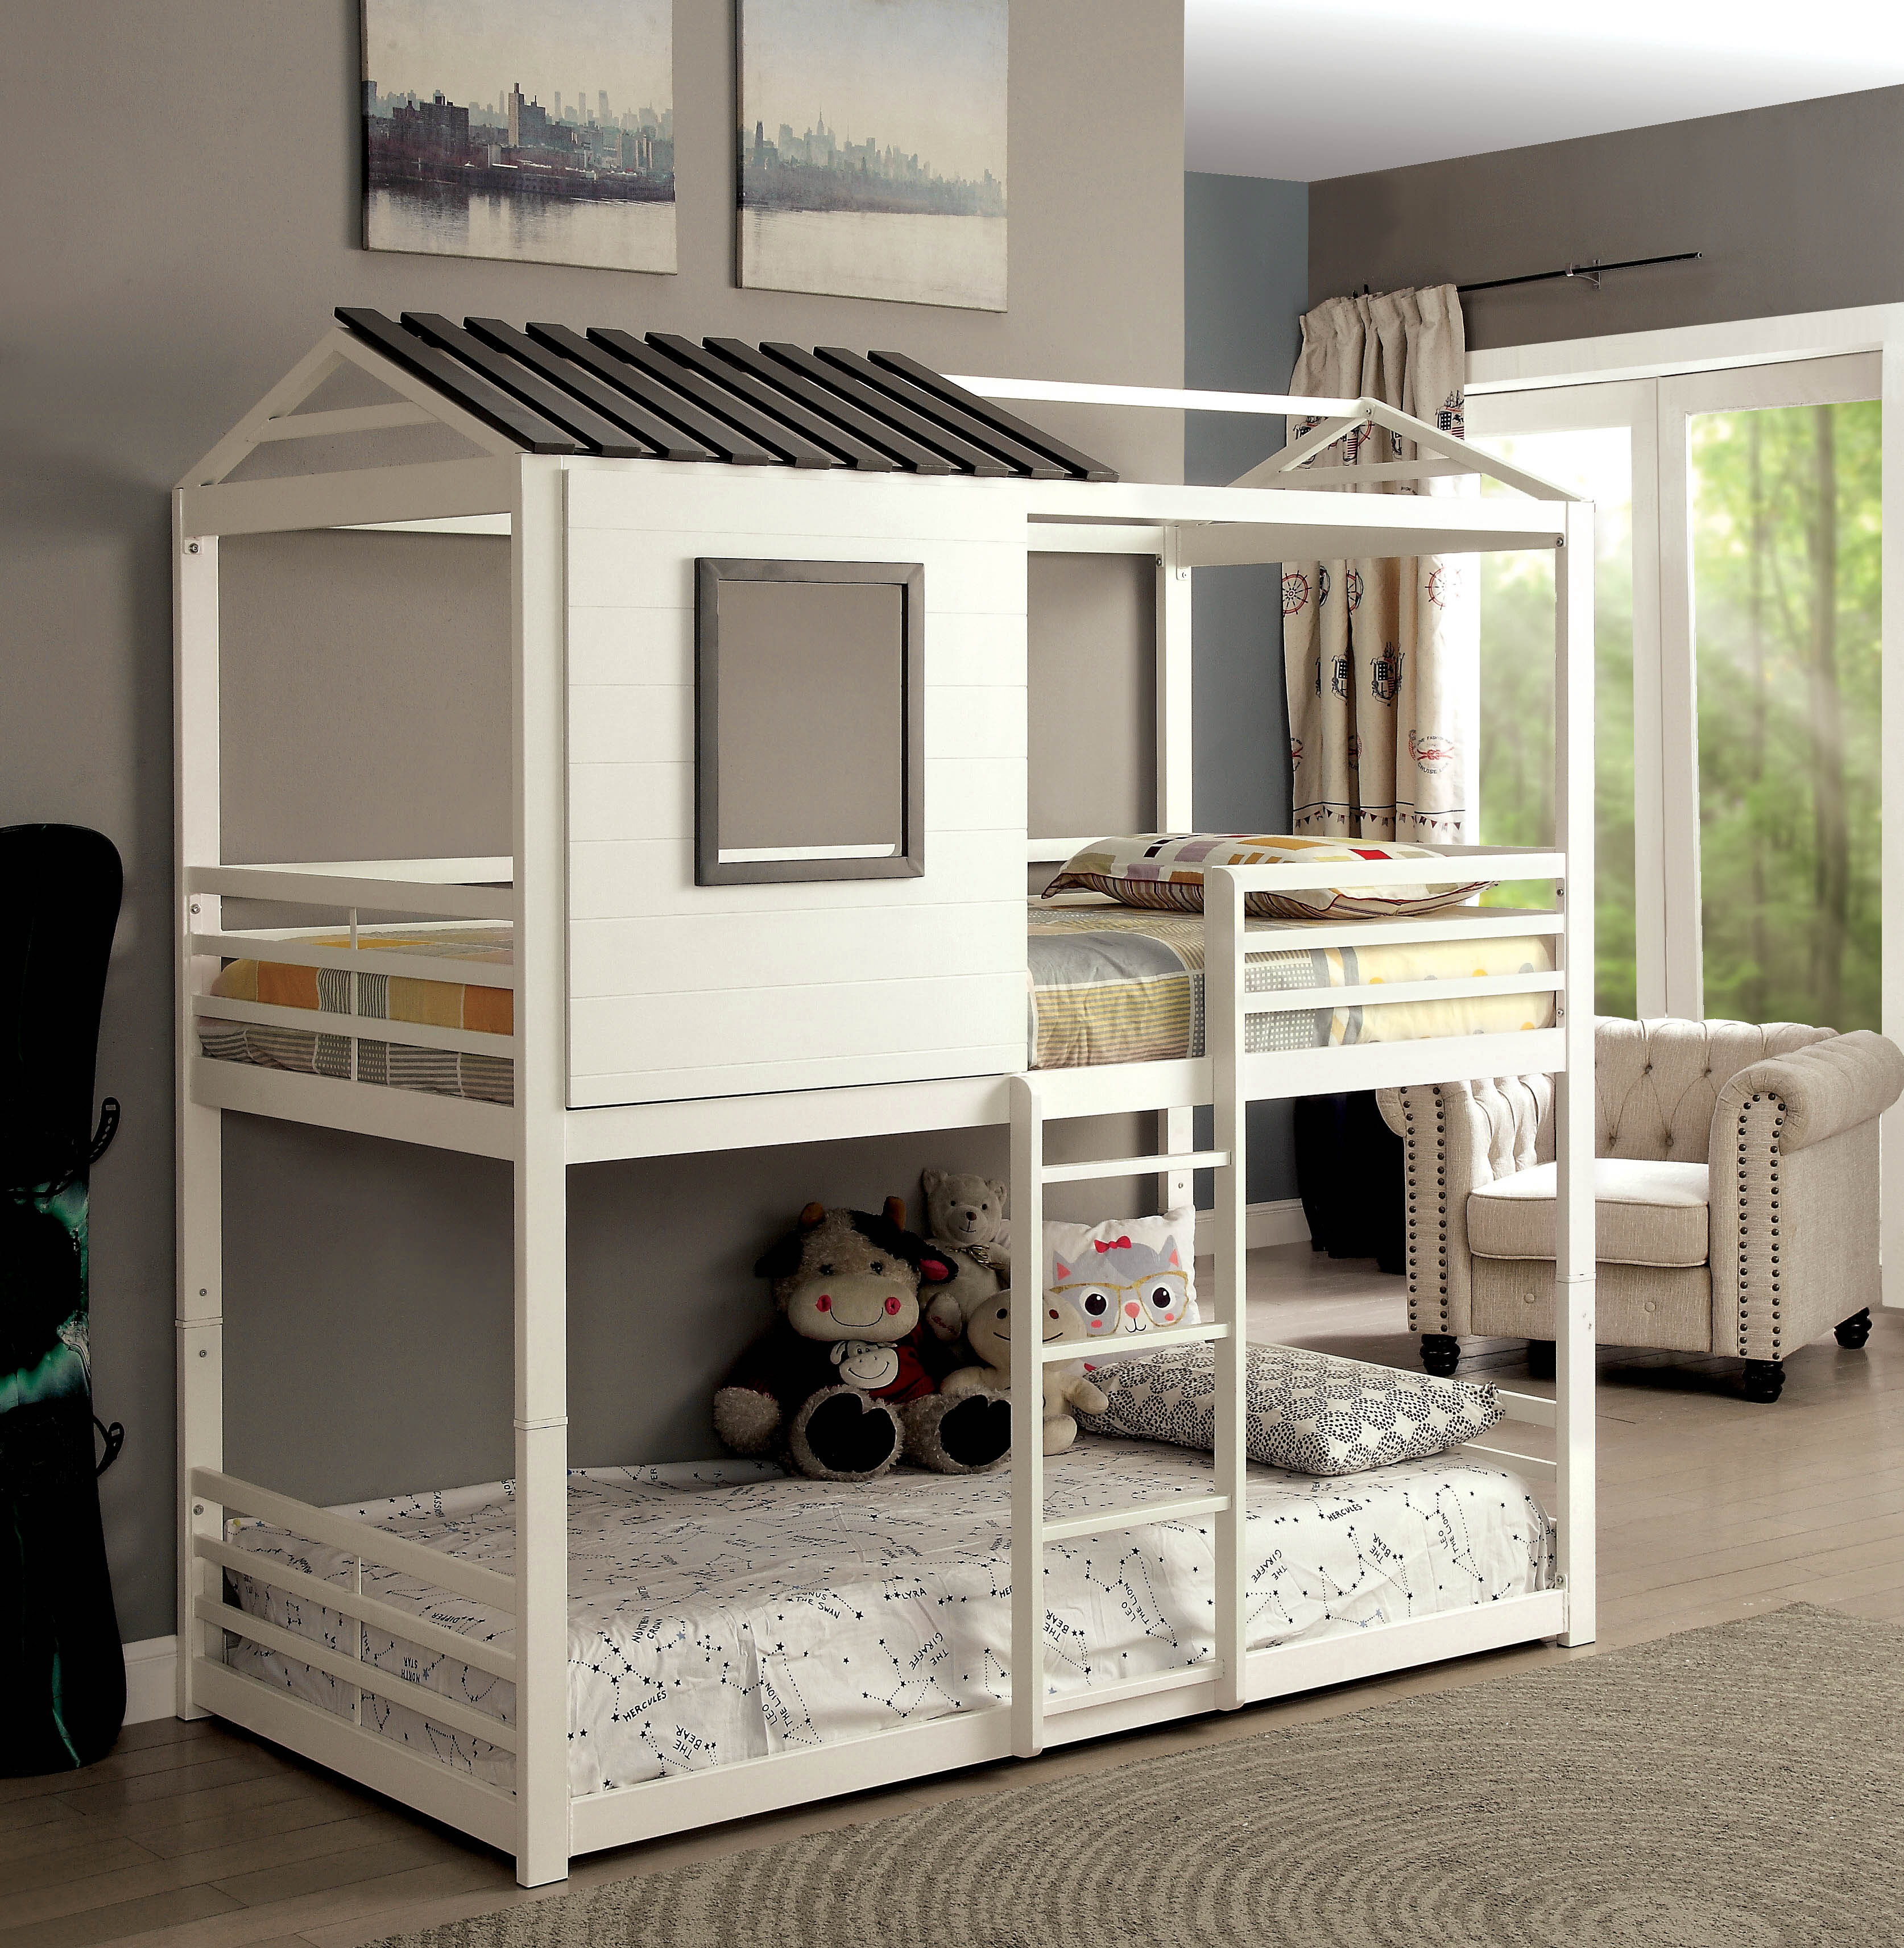 Picture of: Harriet Bee Odum Novelty House Twin Bunk Bed Reviews